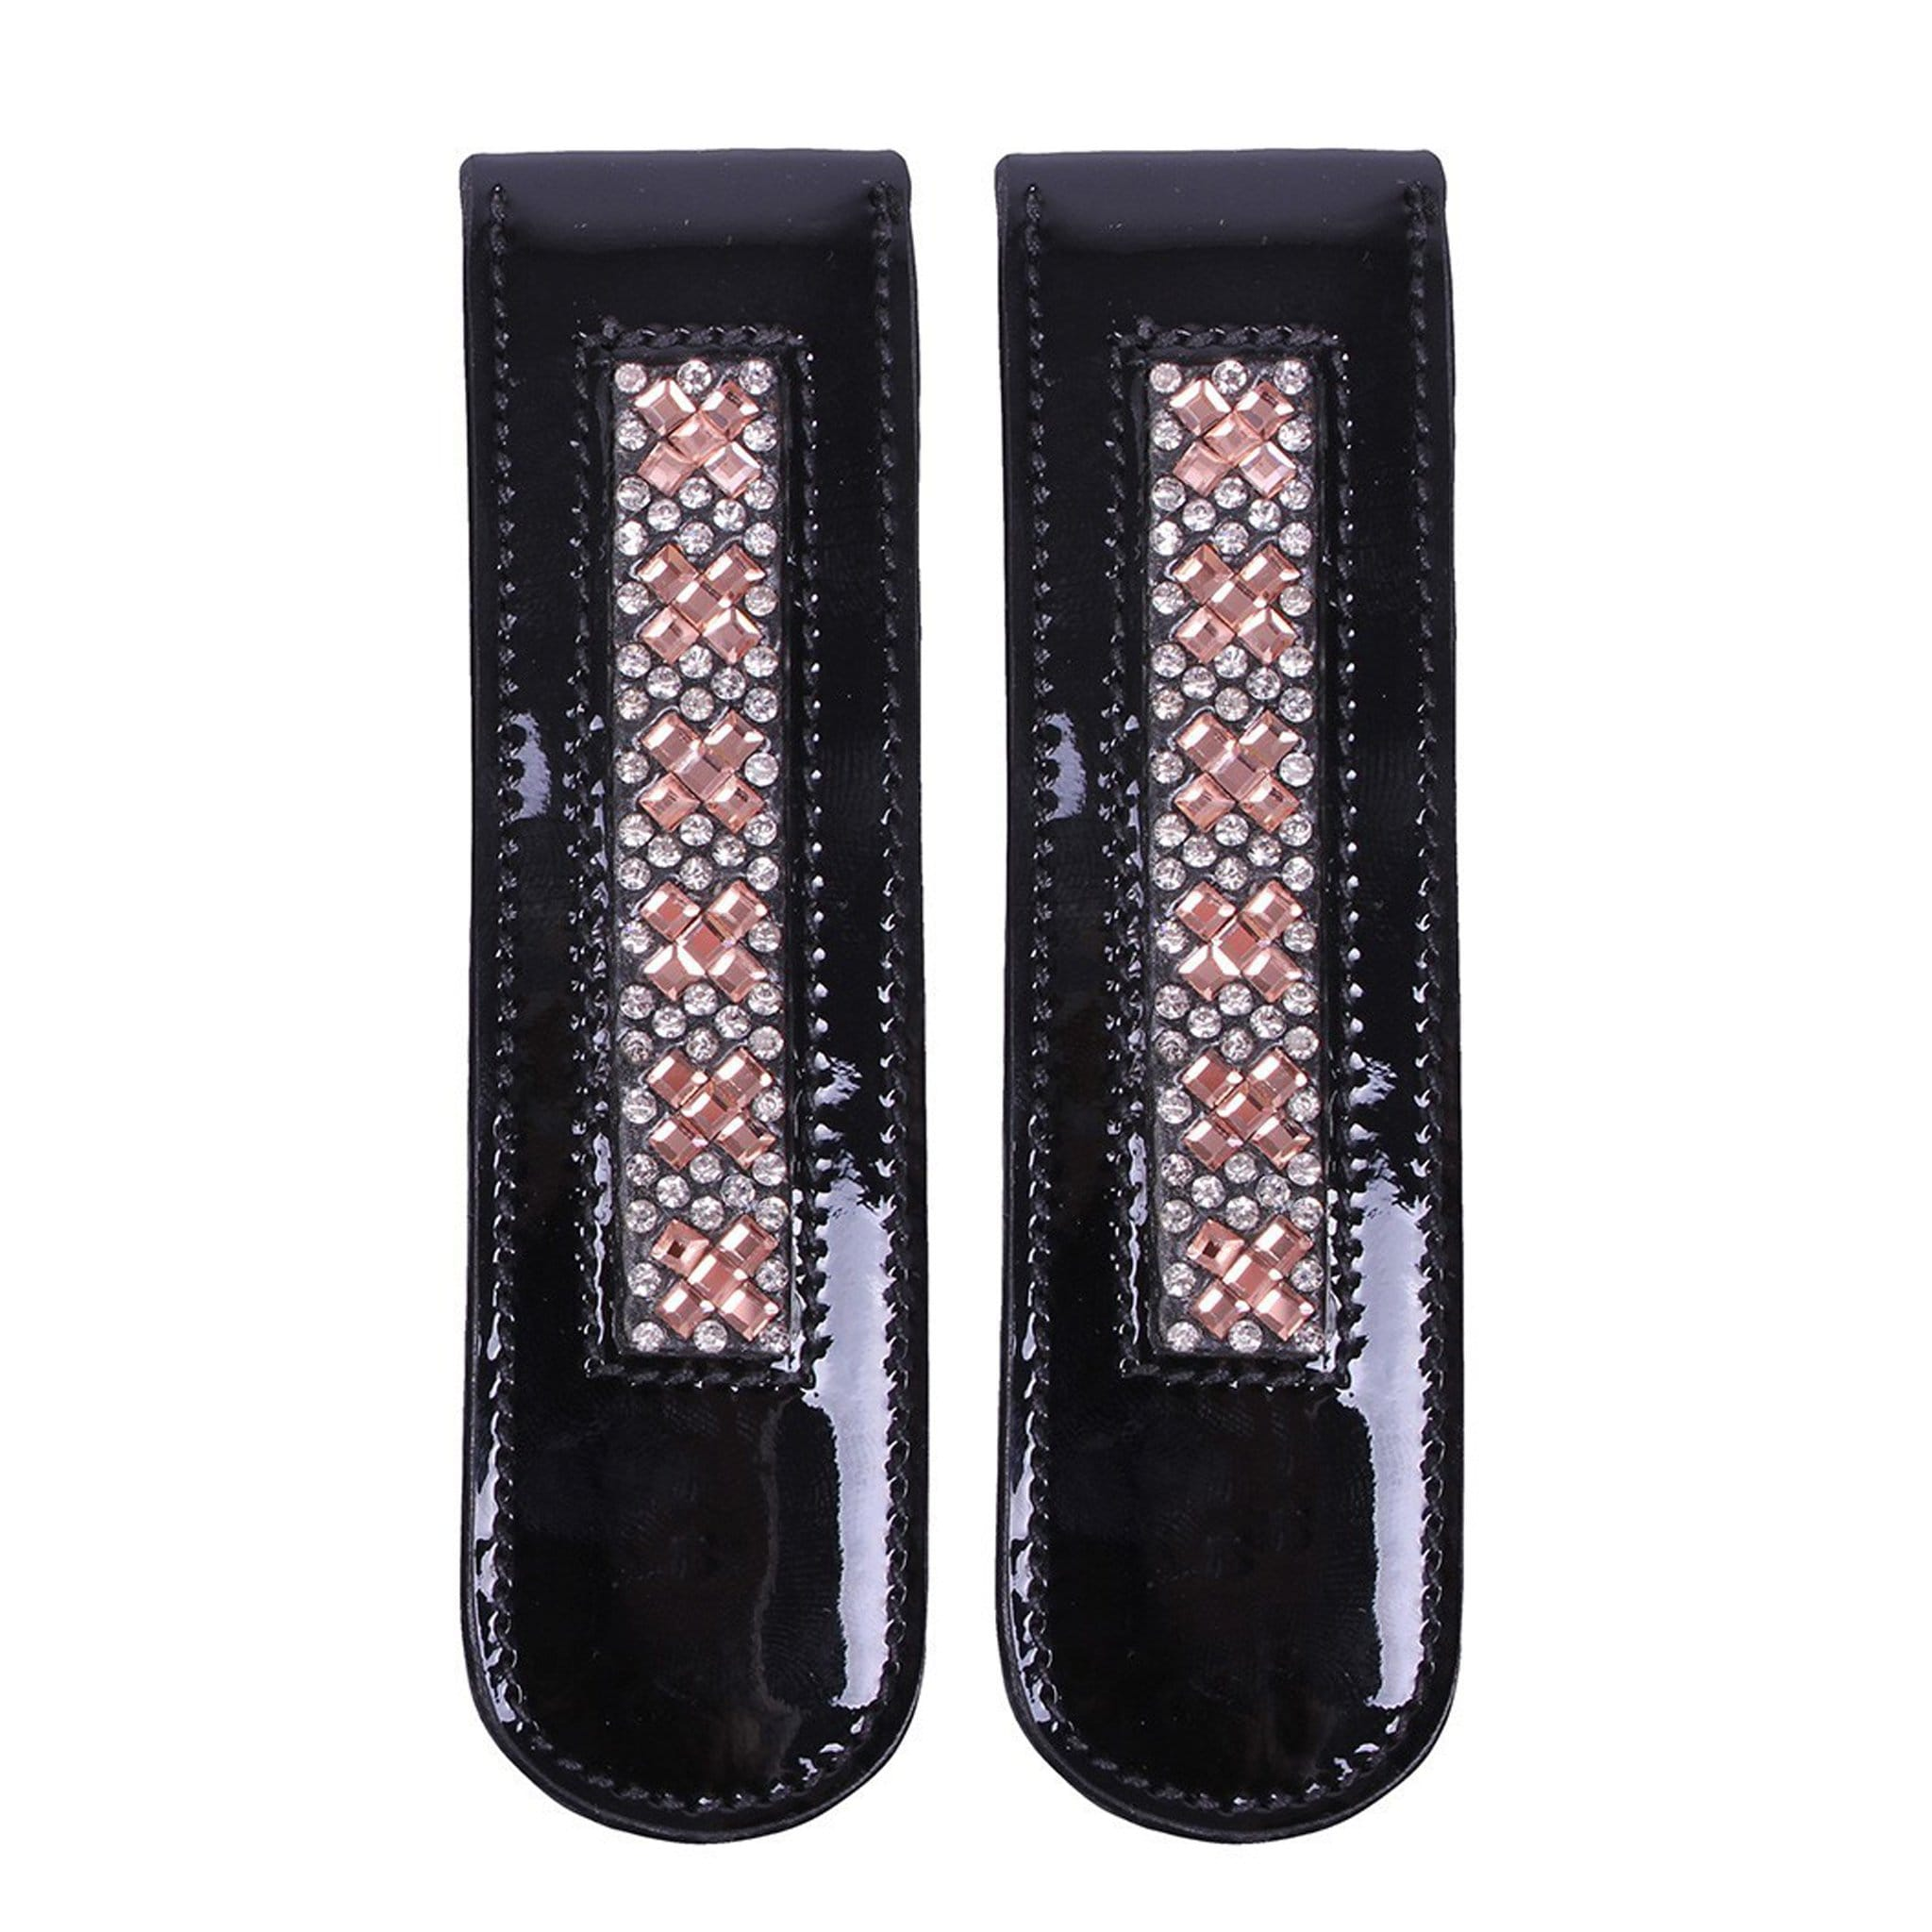 QHP Macey Boot Clip 7135 Black, Silver and Pink, Pair